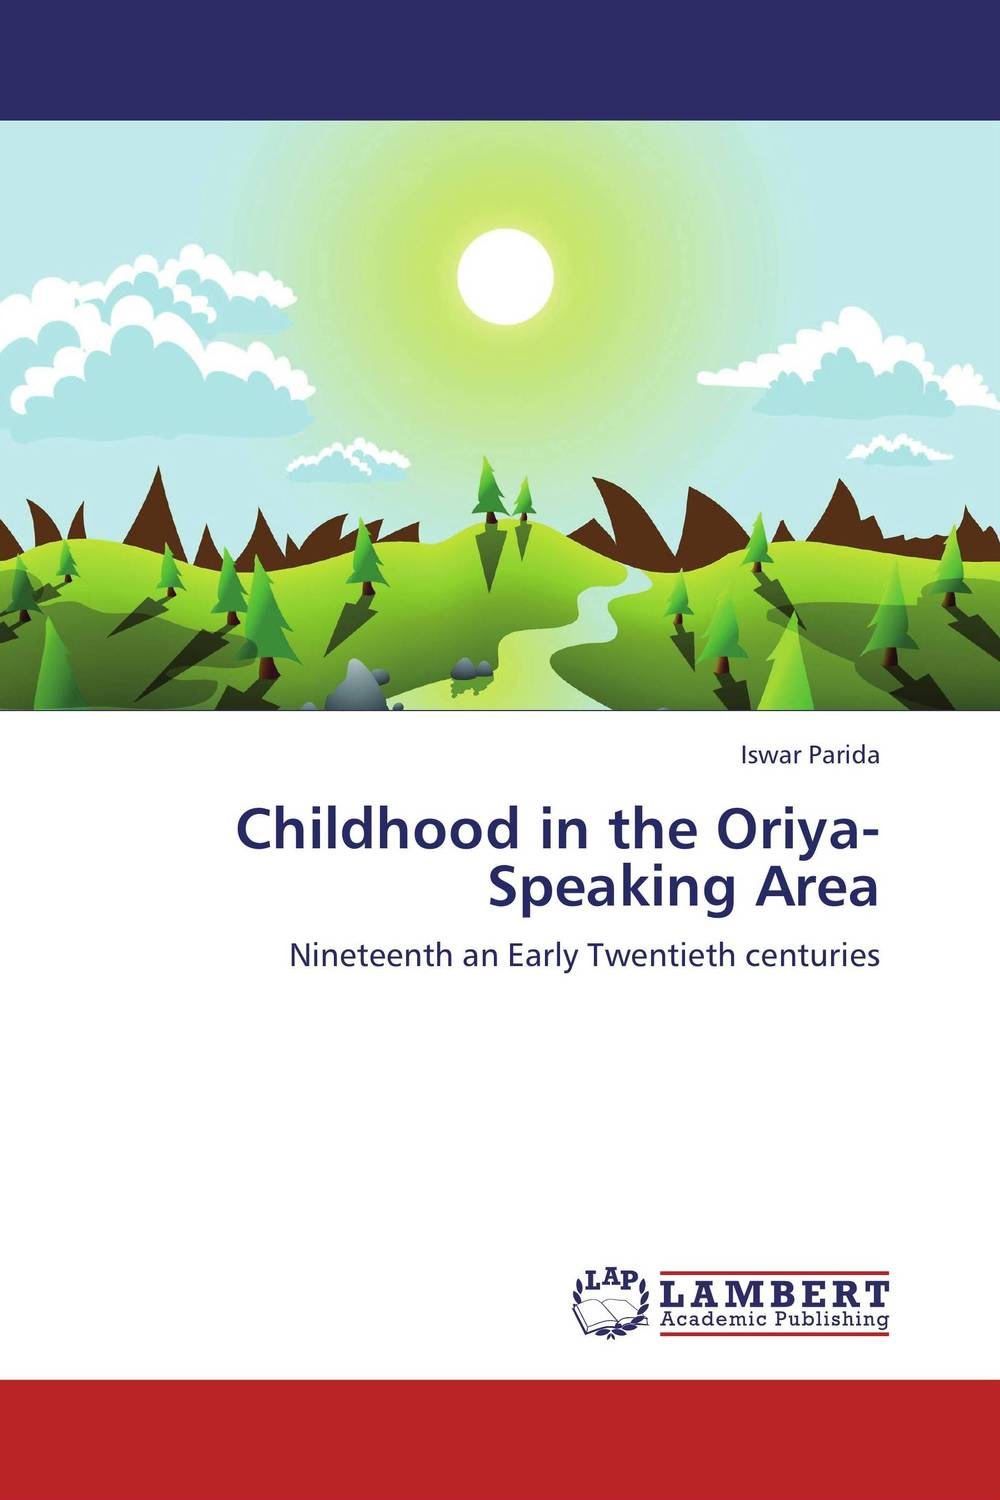 Childhood in the Oriya-Speaking Area